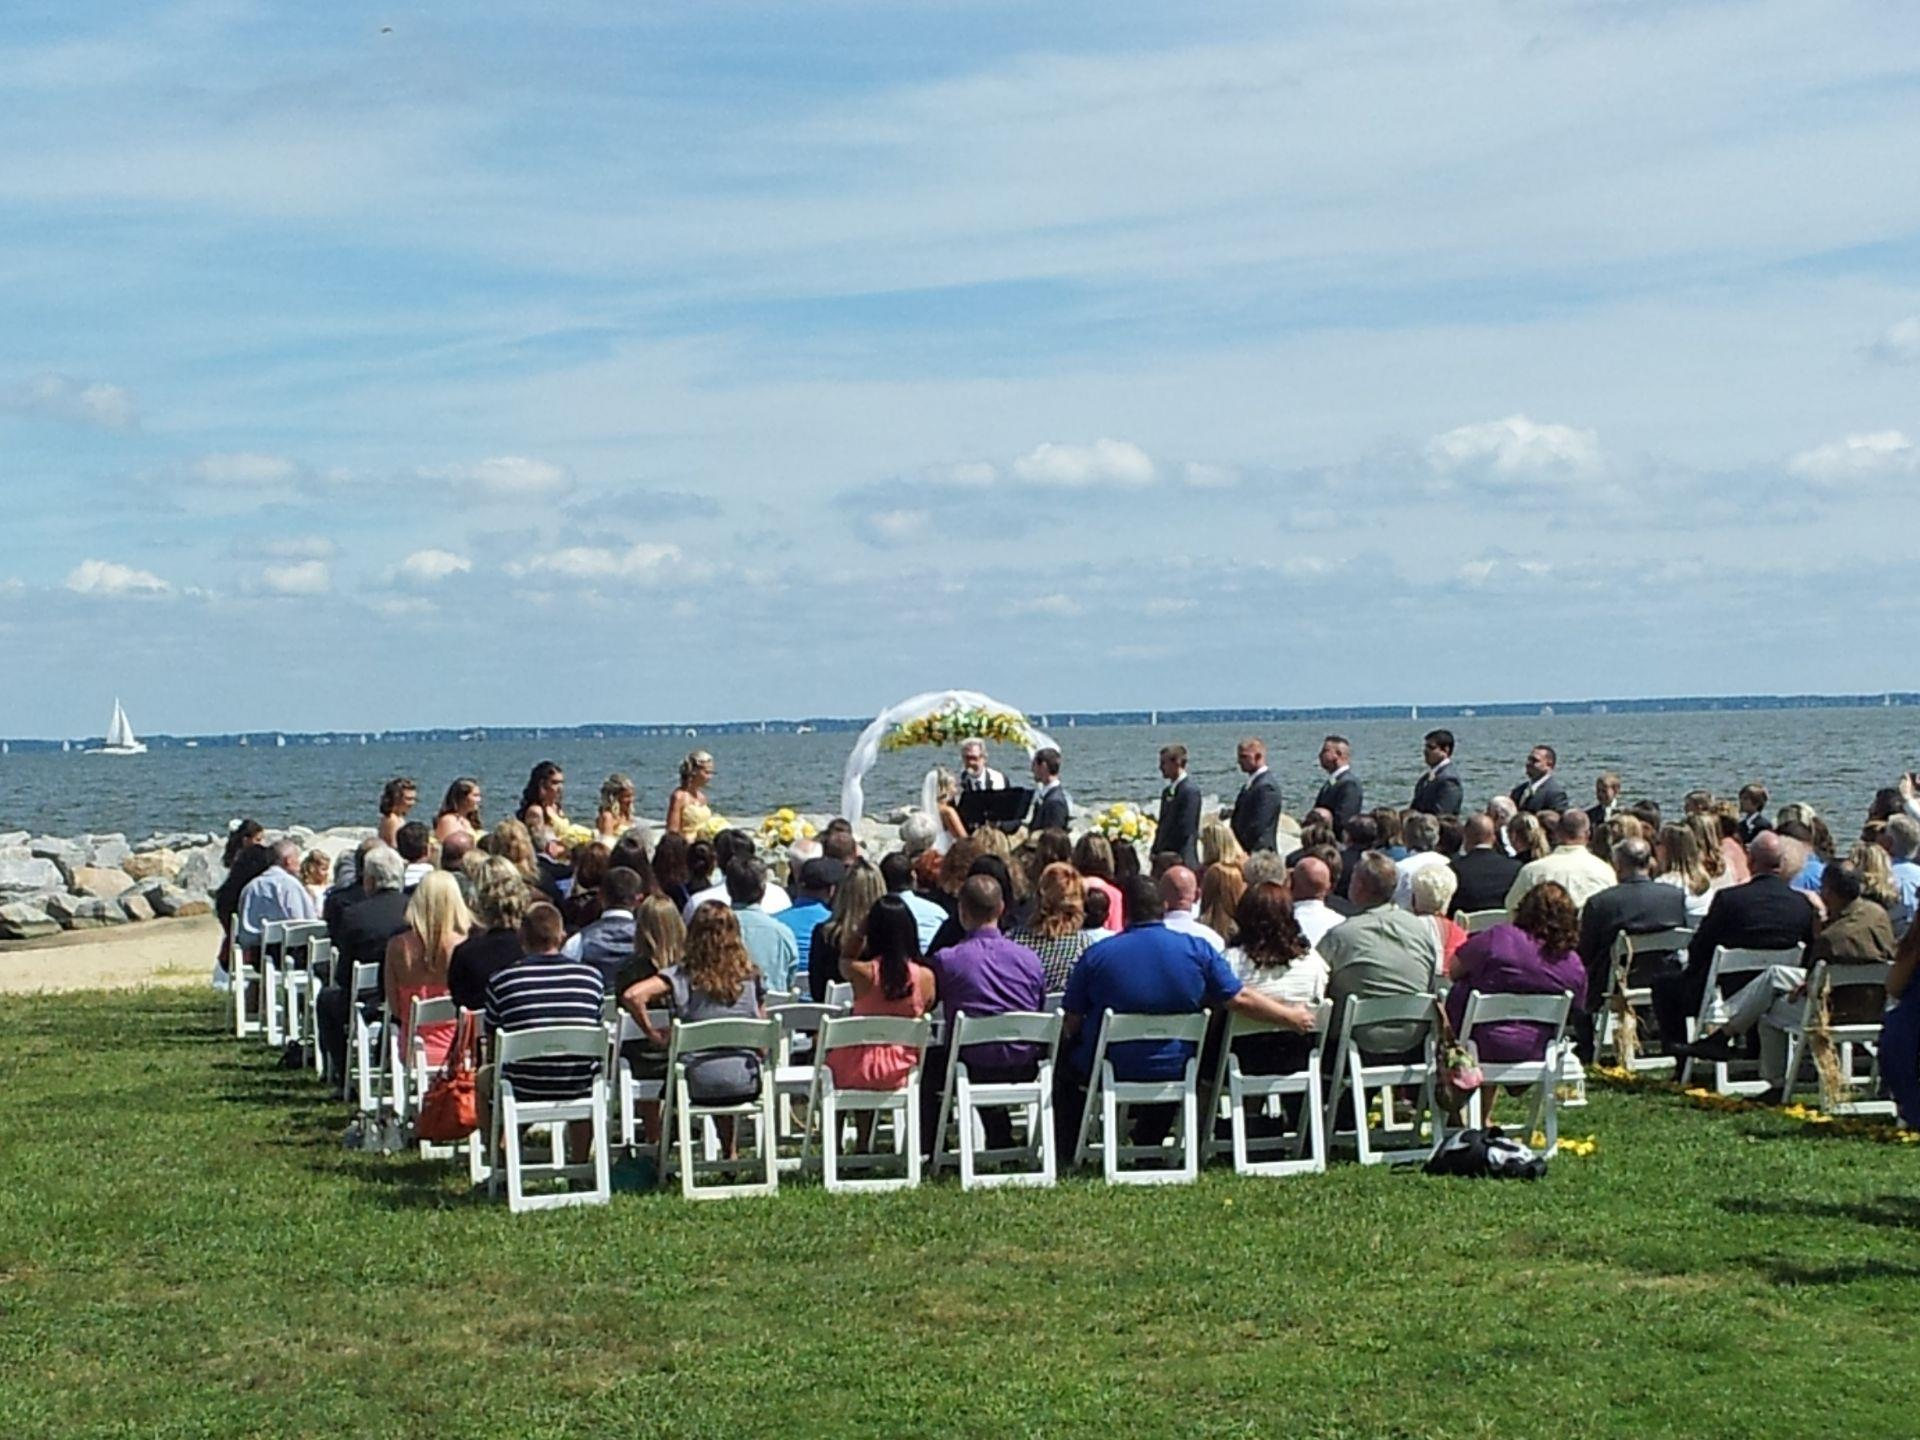 Group of people gathered for a wedding ceremony beside a beach